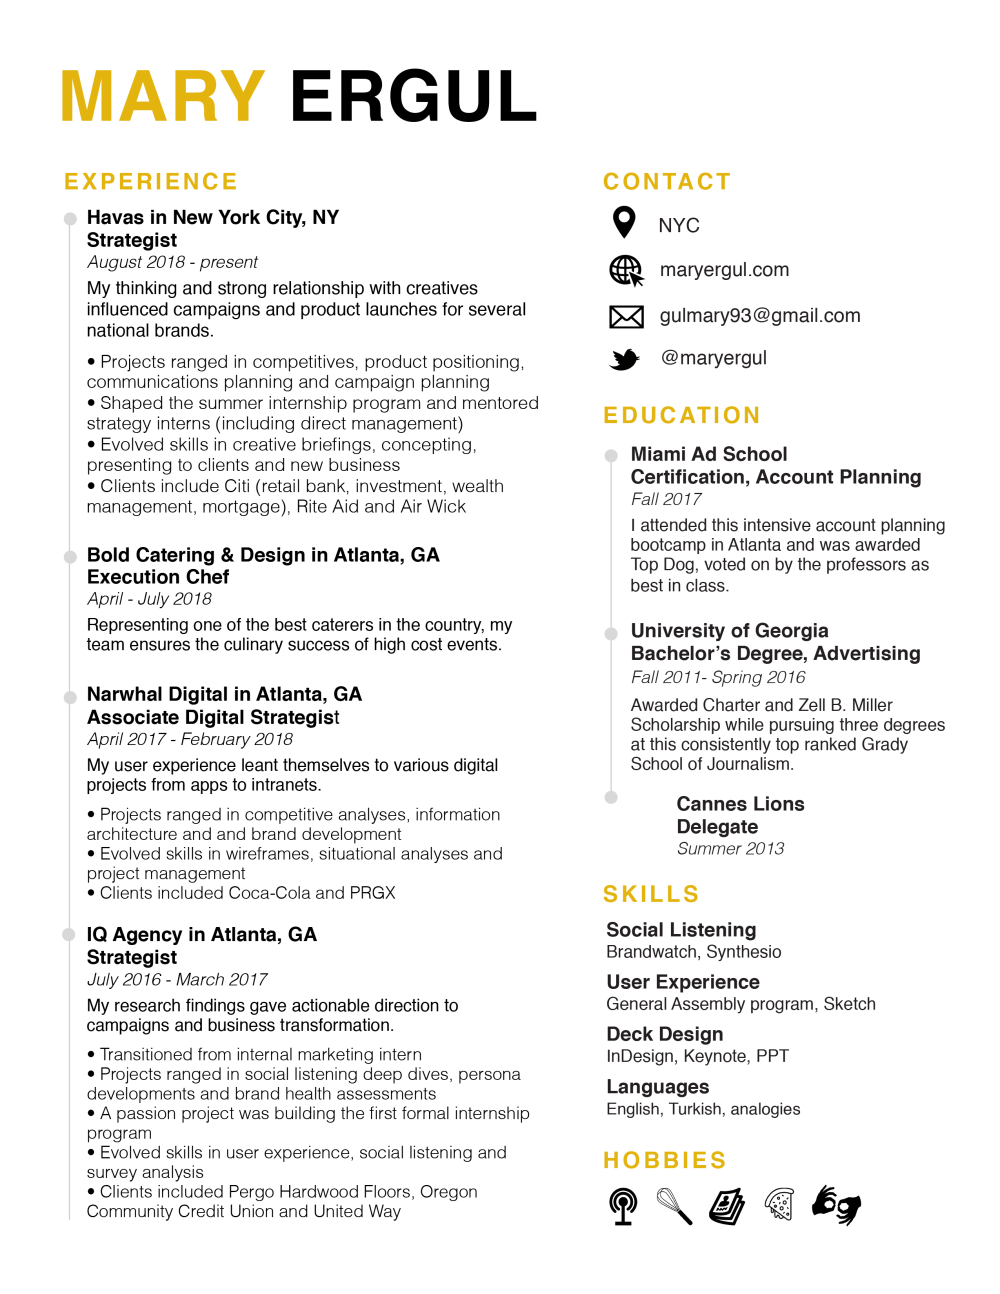 mary-ergul-2019-resume